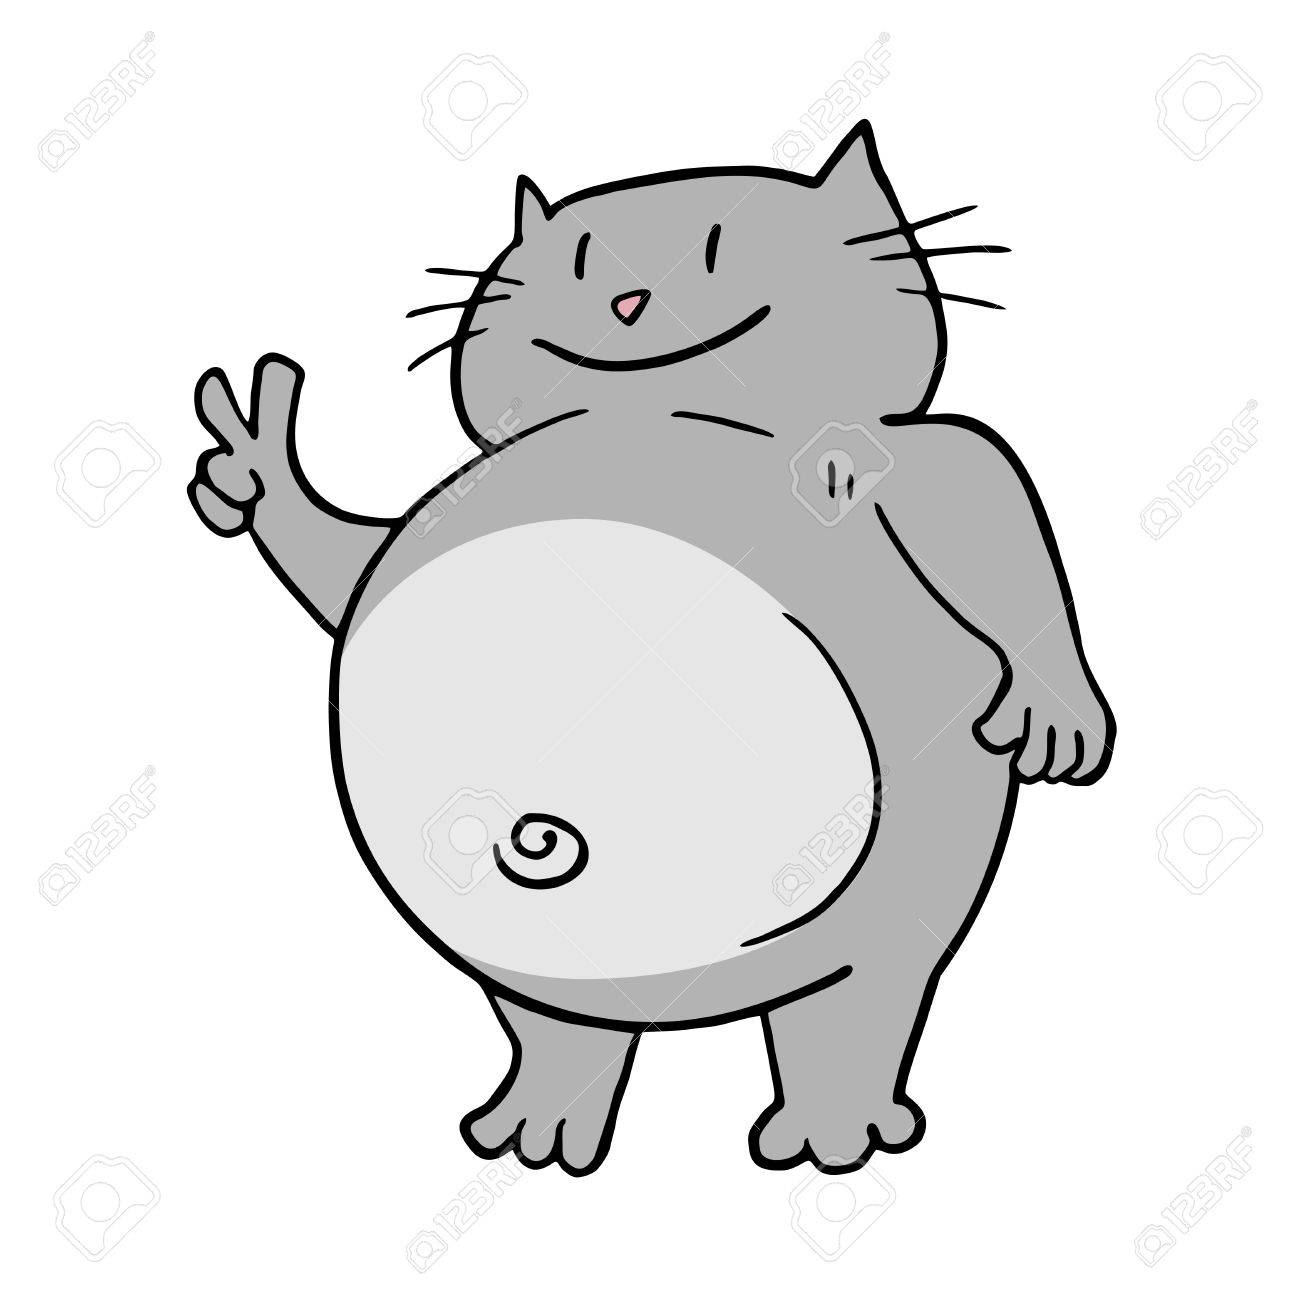 funny fat cat royalty free cliparts vectors and stock illustration rh 123rf com